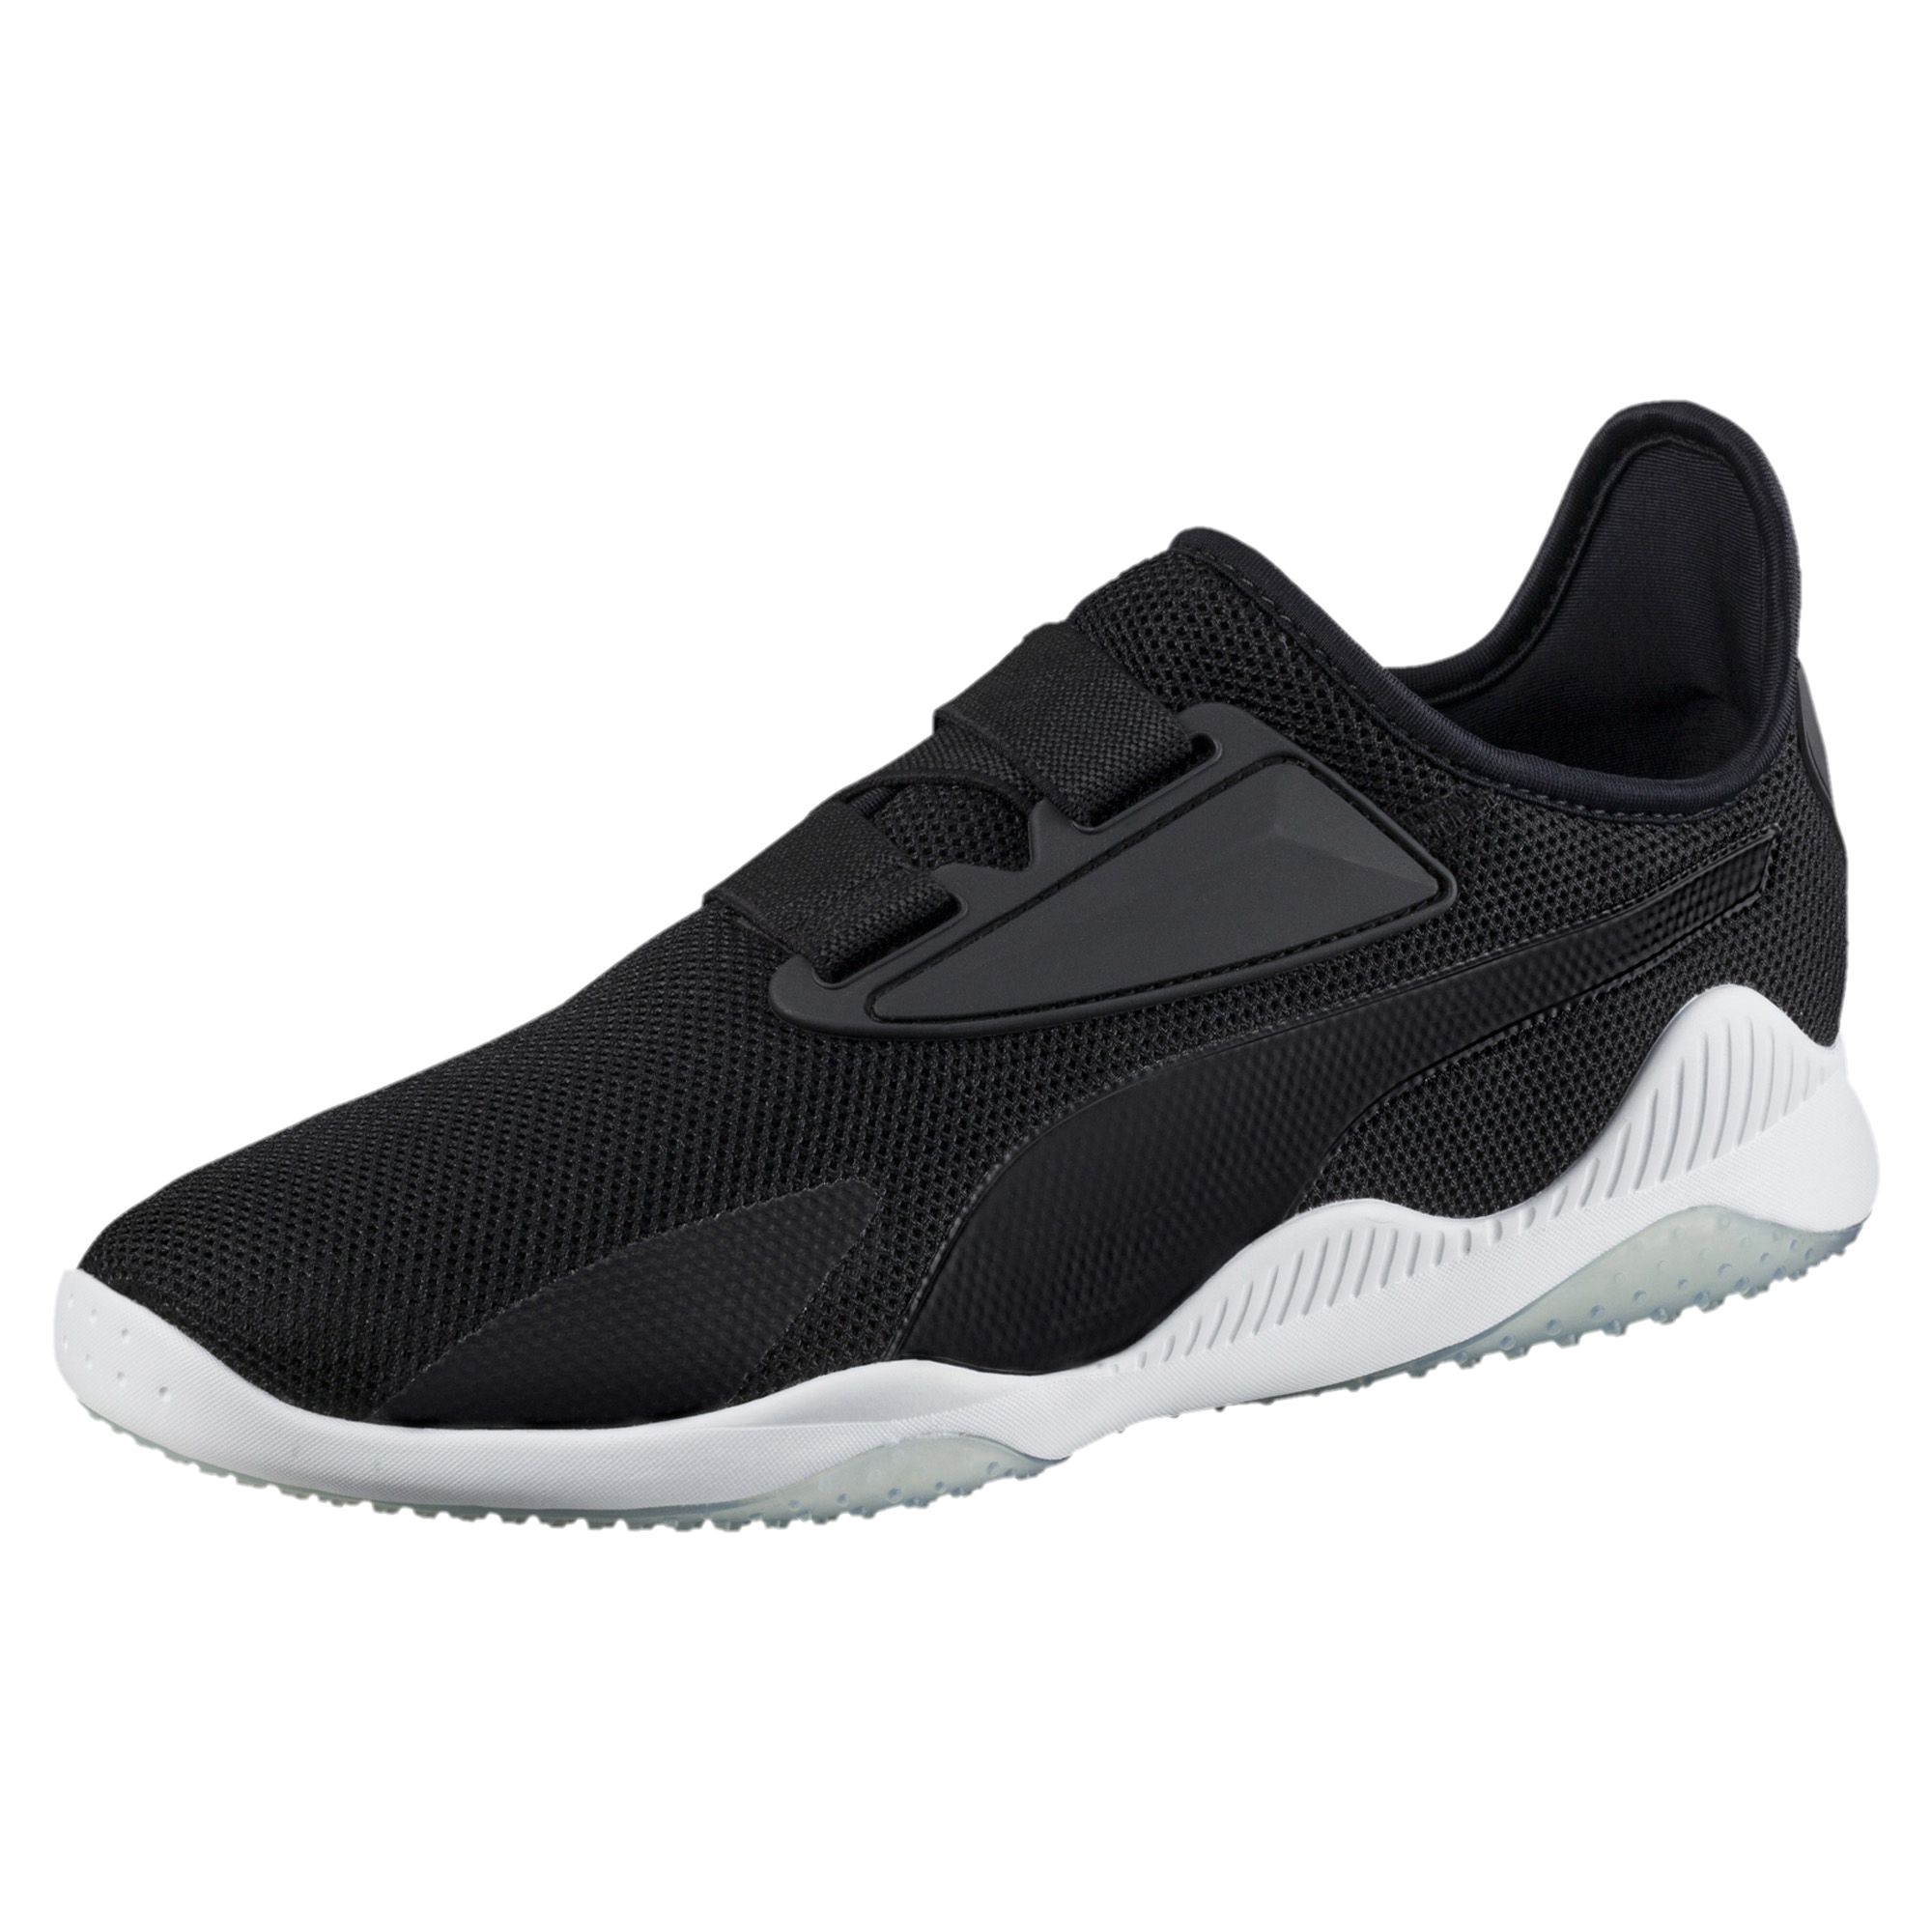 puma mostro puma-mostro-mesh-trainers-men-shoe-evolution-new LXNROGO